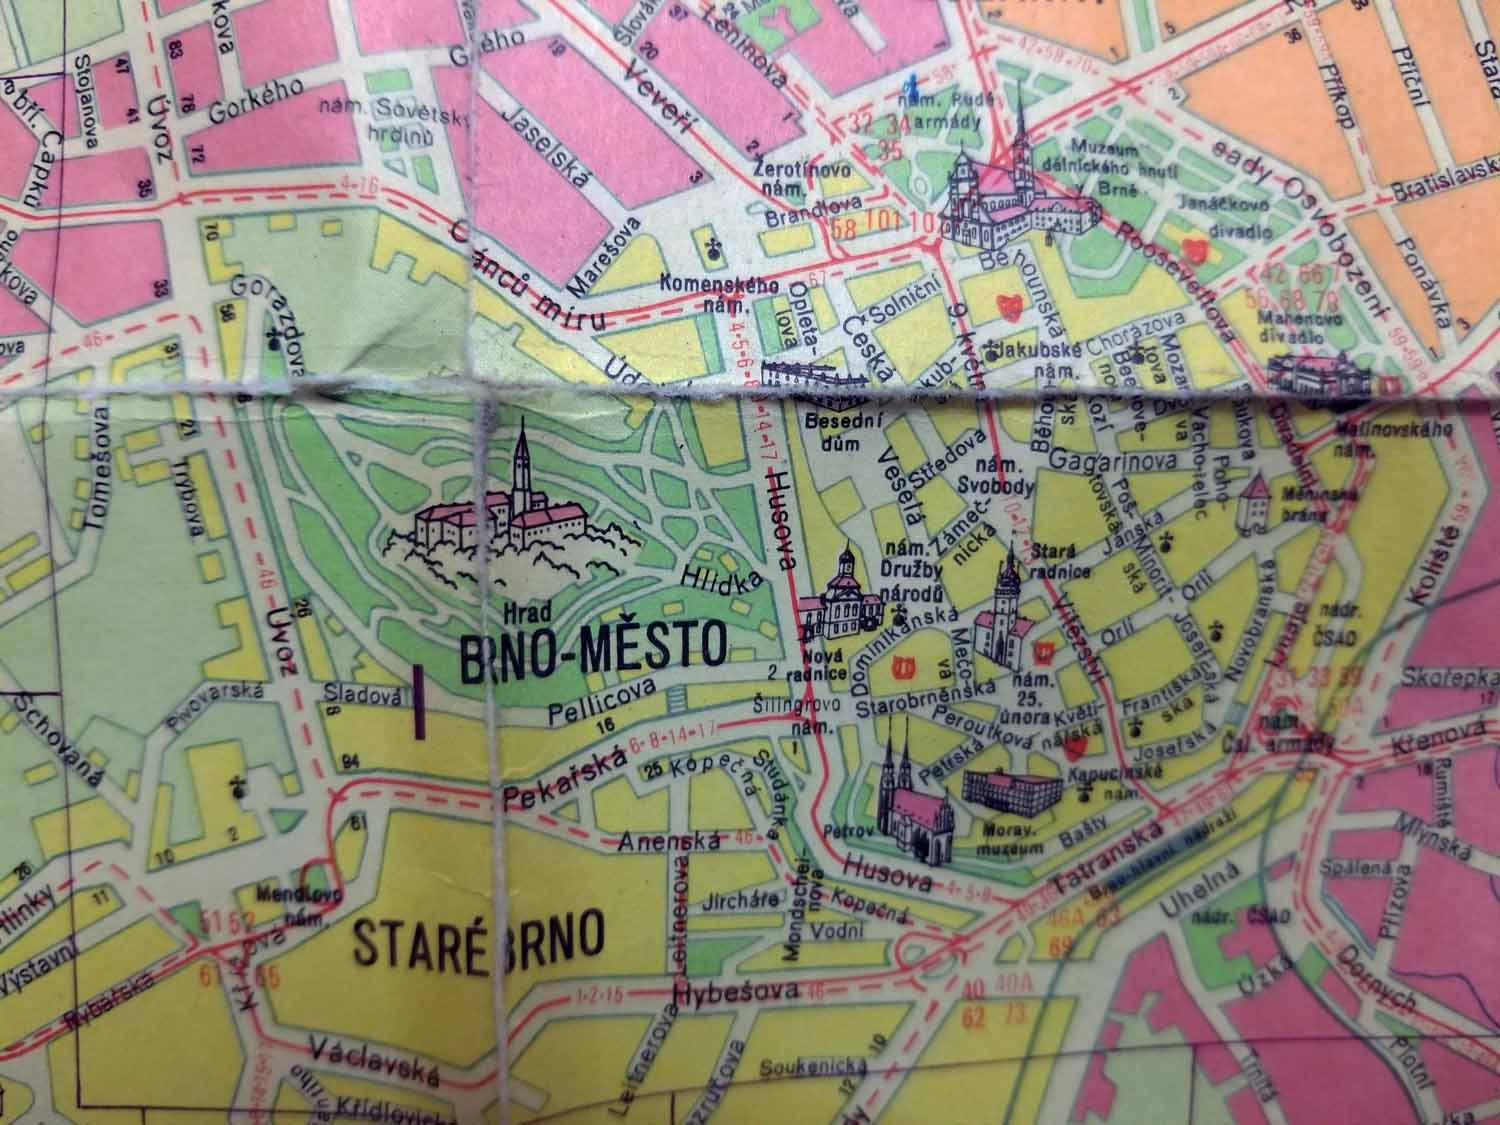 Czech-Republic-Brno-10-Z-Bunker-Map